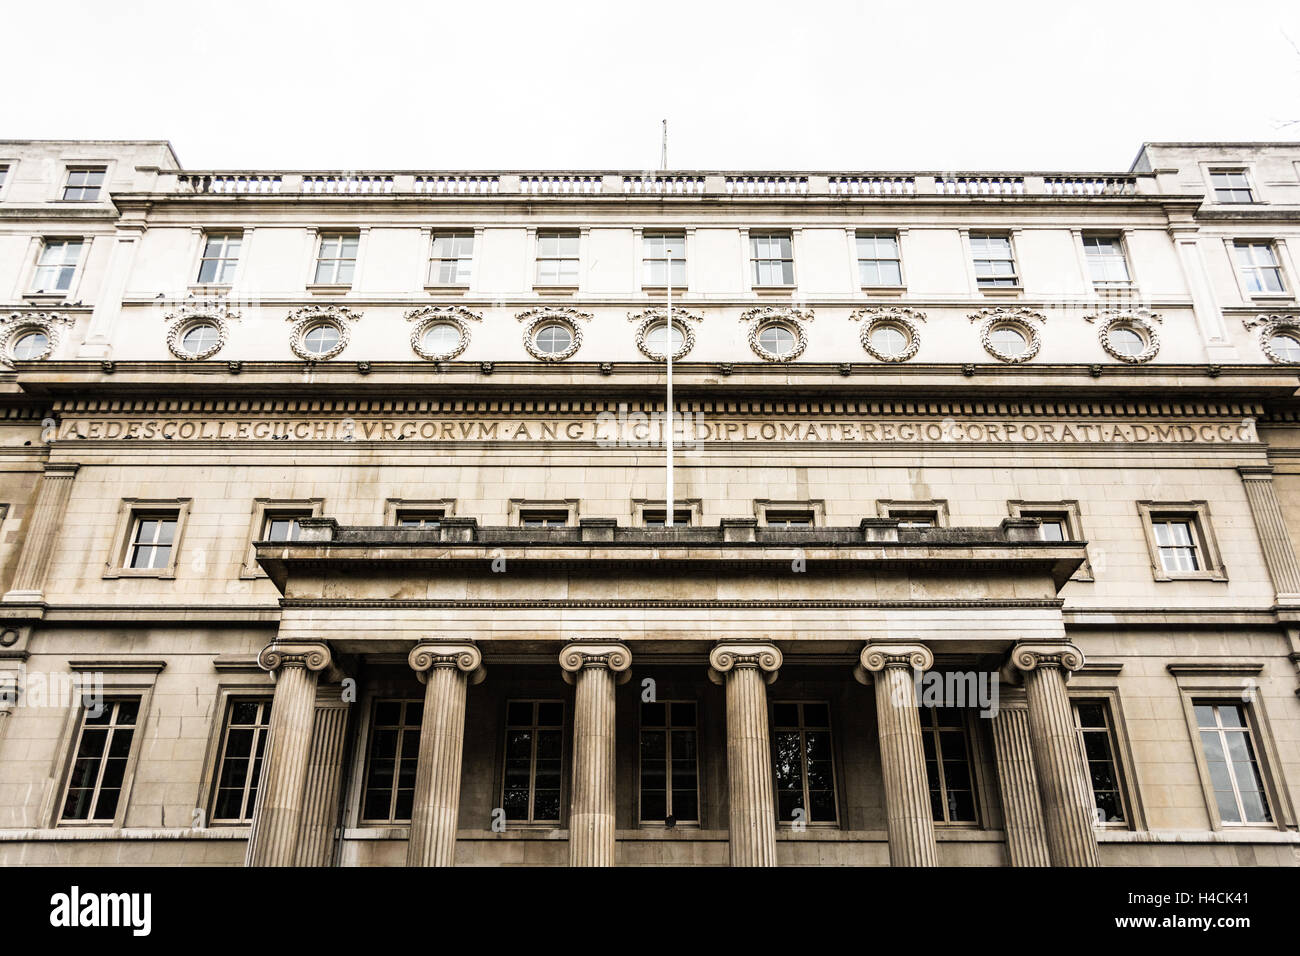 Royal College of surgeons of England on Lincoln's Inn Fields, London, UK - Stock Image